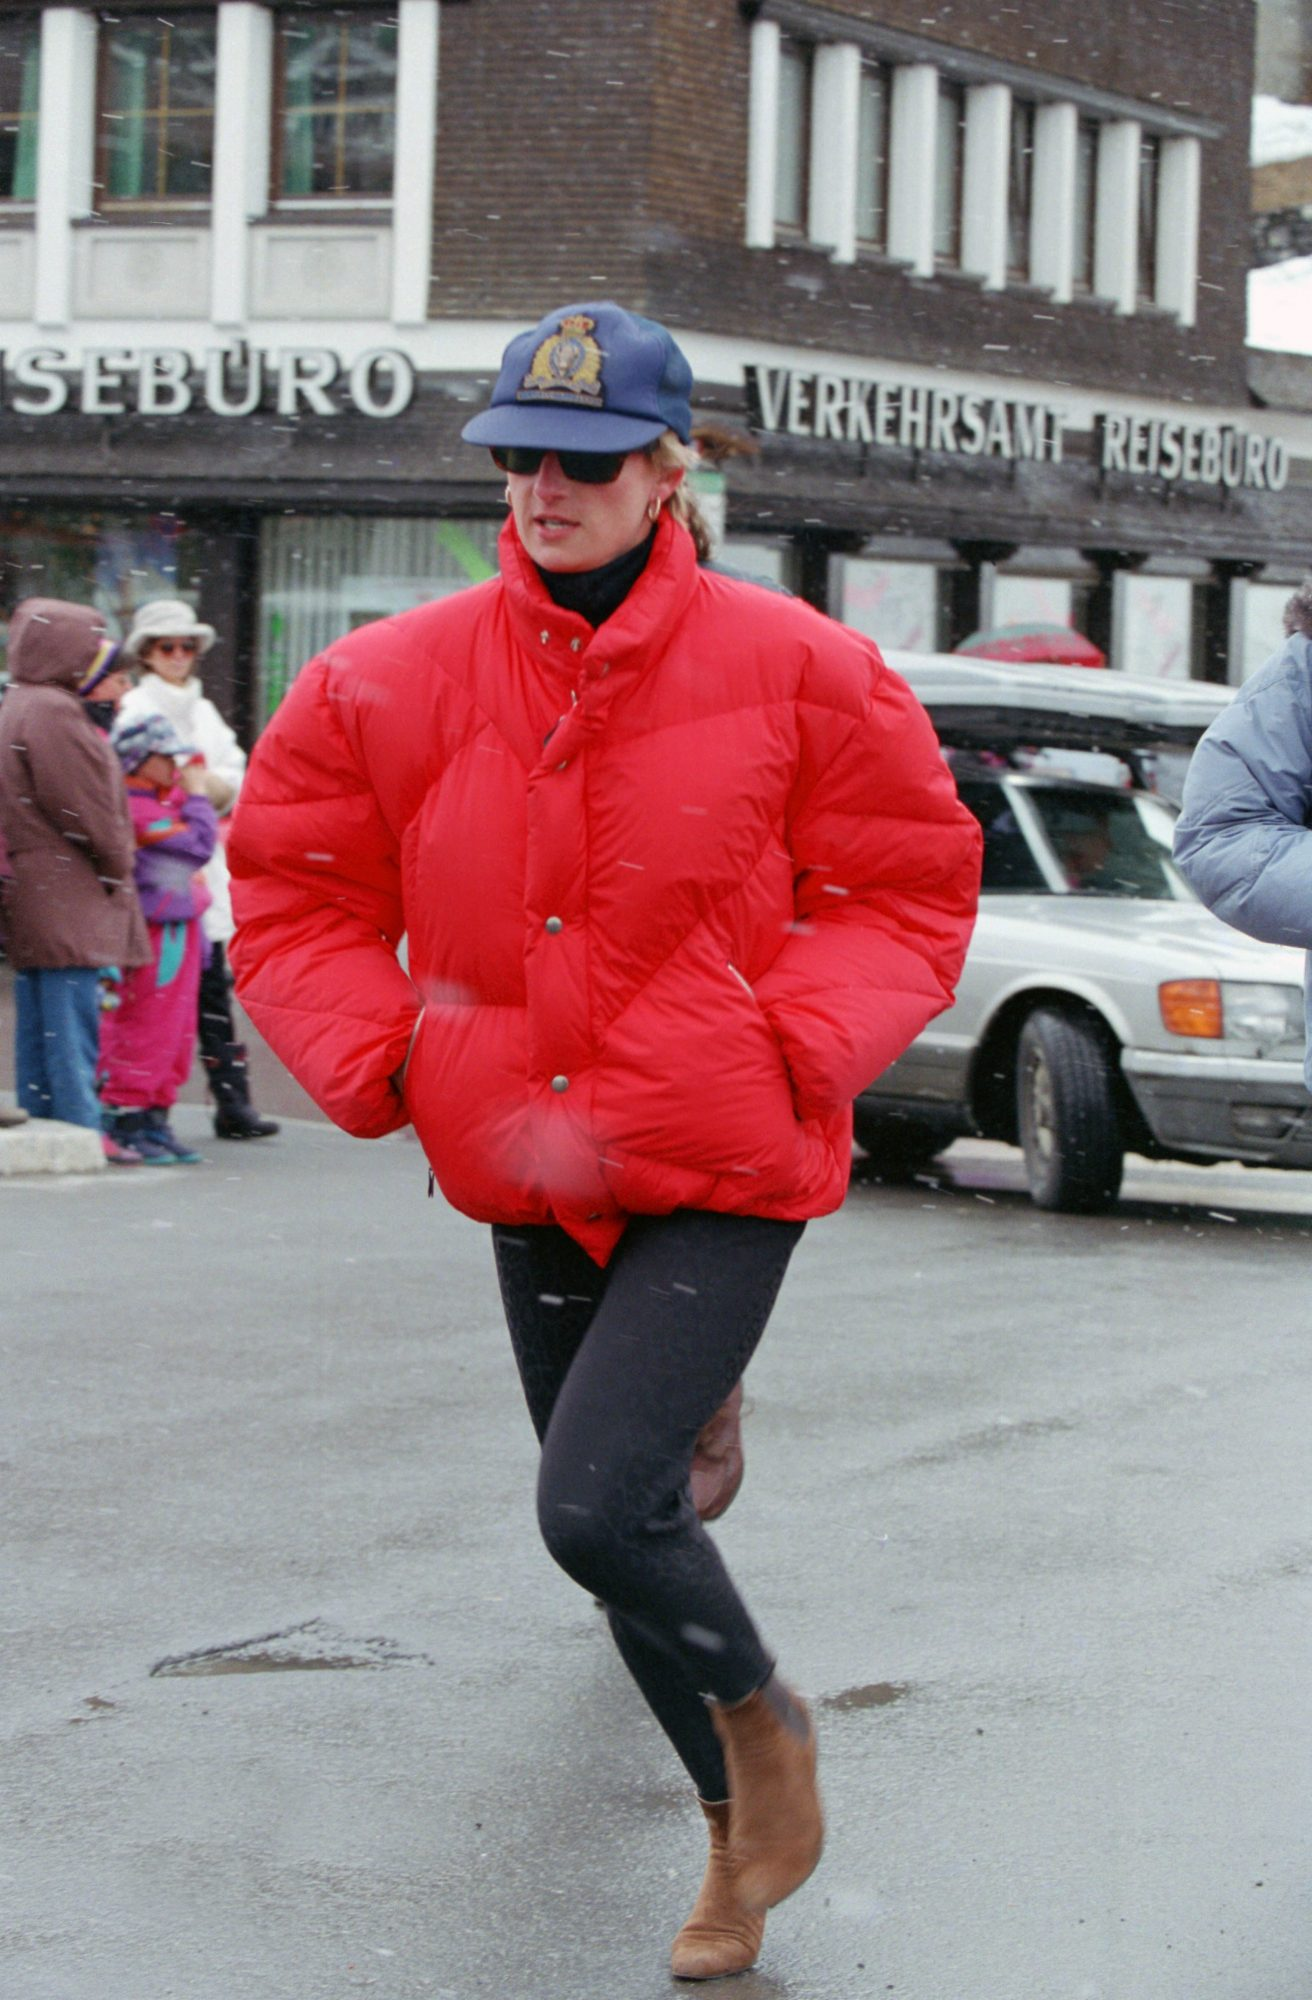 Princess Diana Wear a Red Puffer Jacket